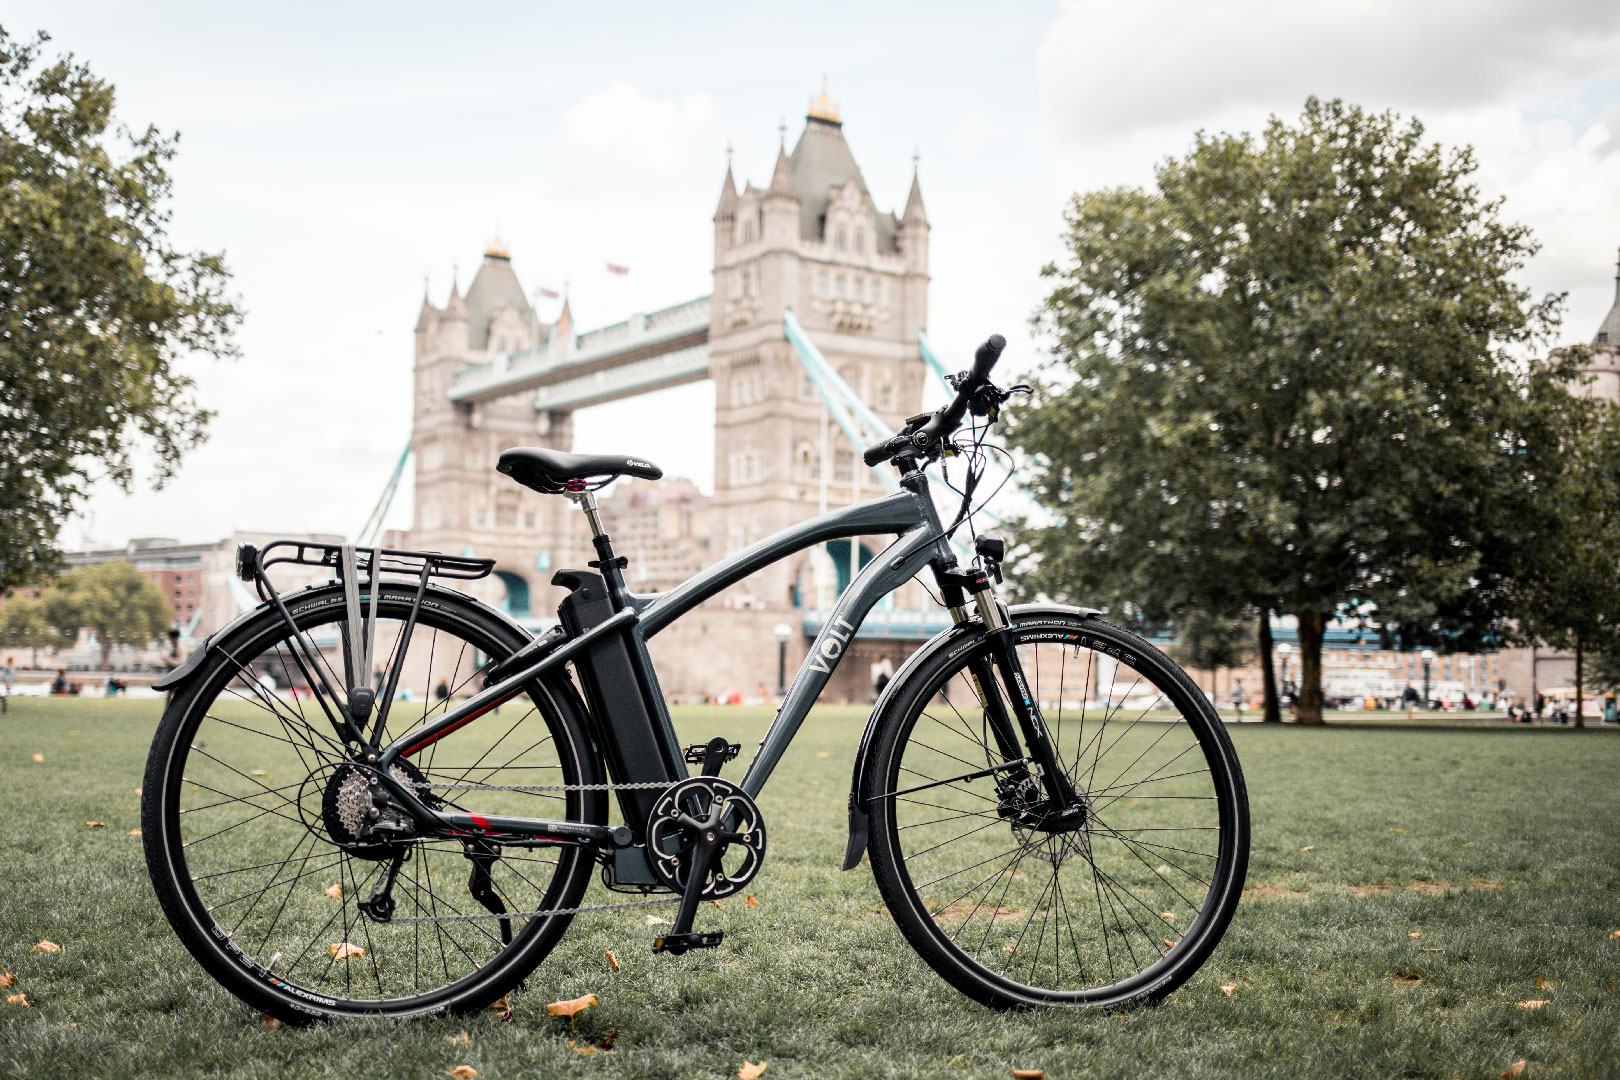 Volt Pulse X Hybrid E-bike in Front of Tower Bridge